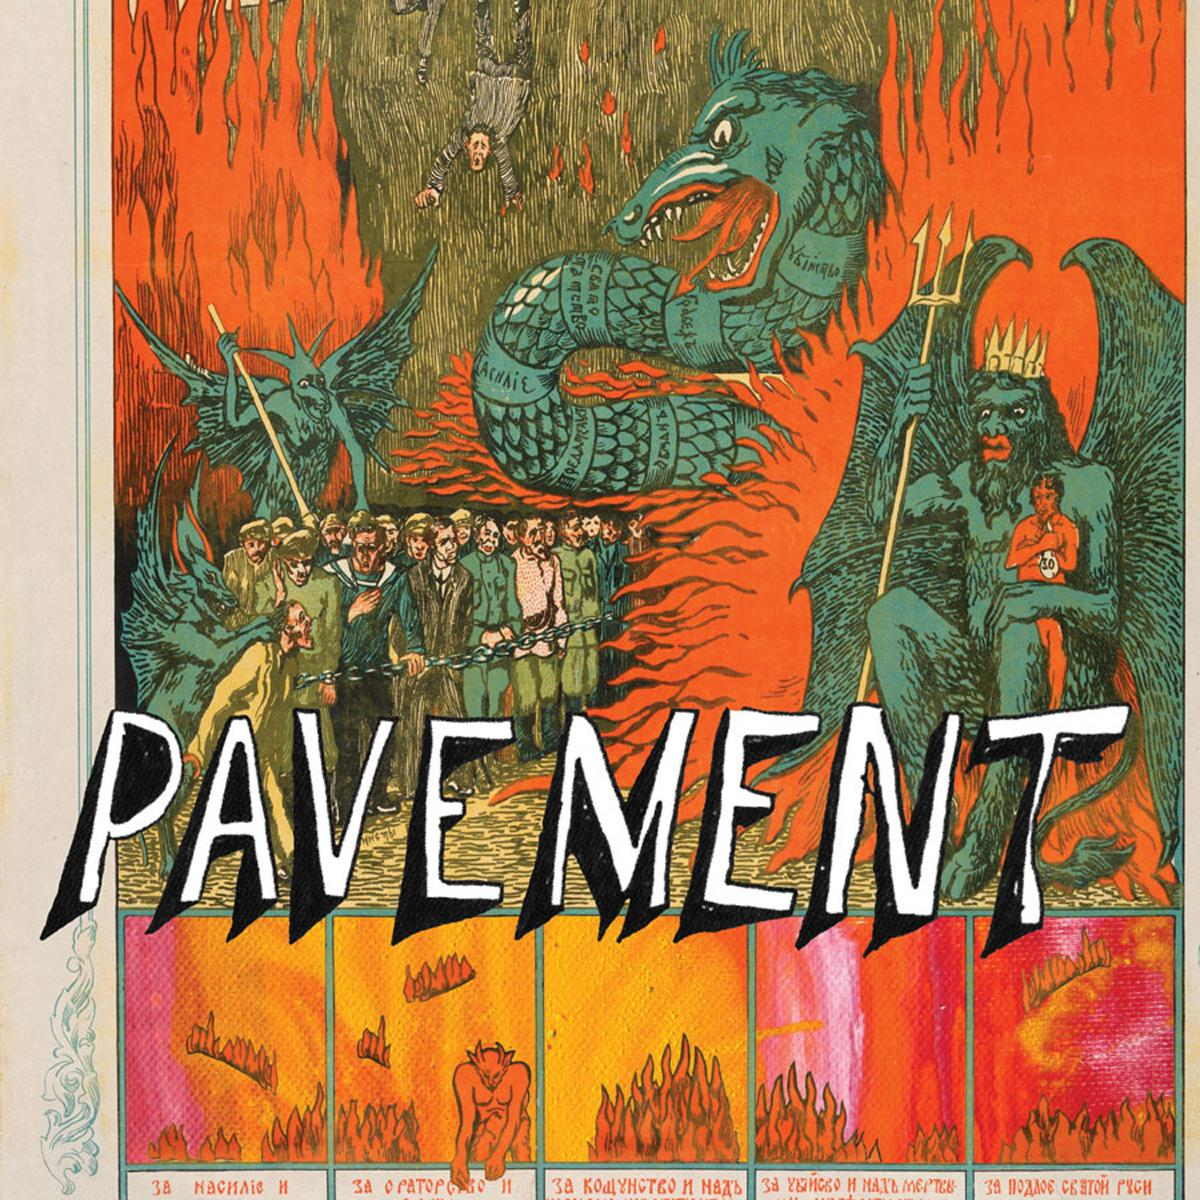 Quarantine The Past by Pavement on Matador Records